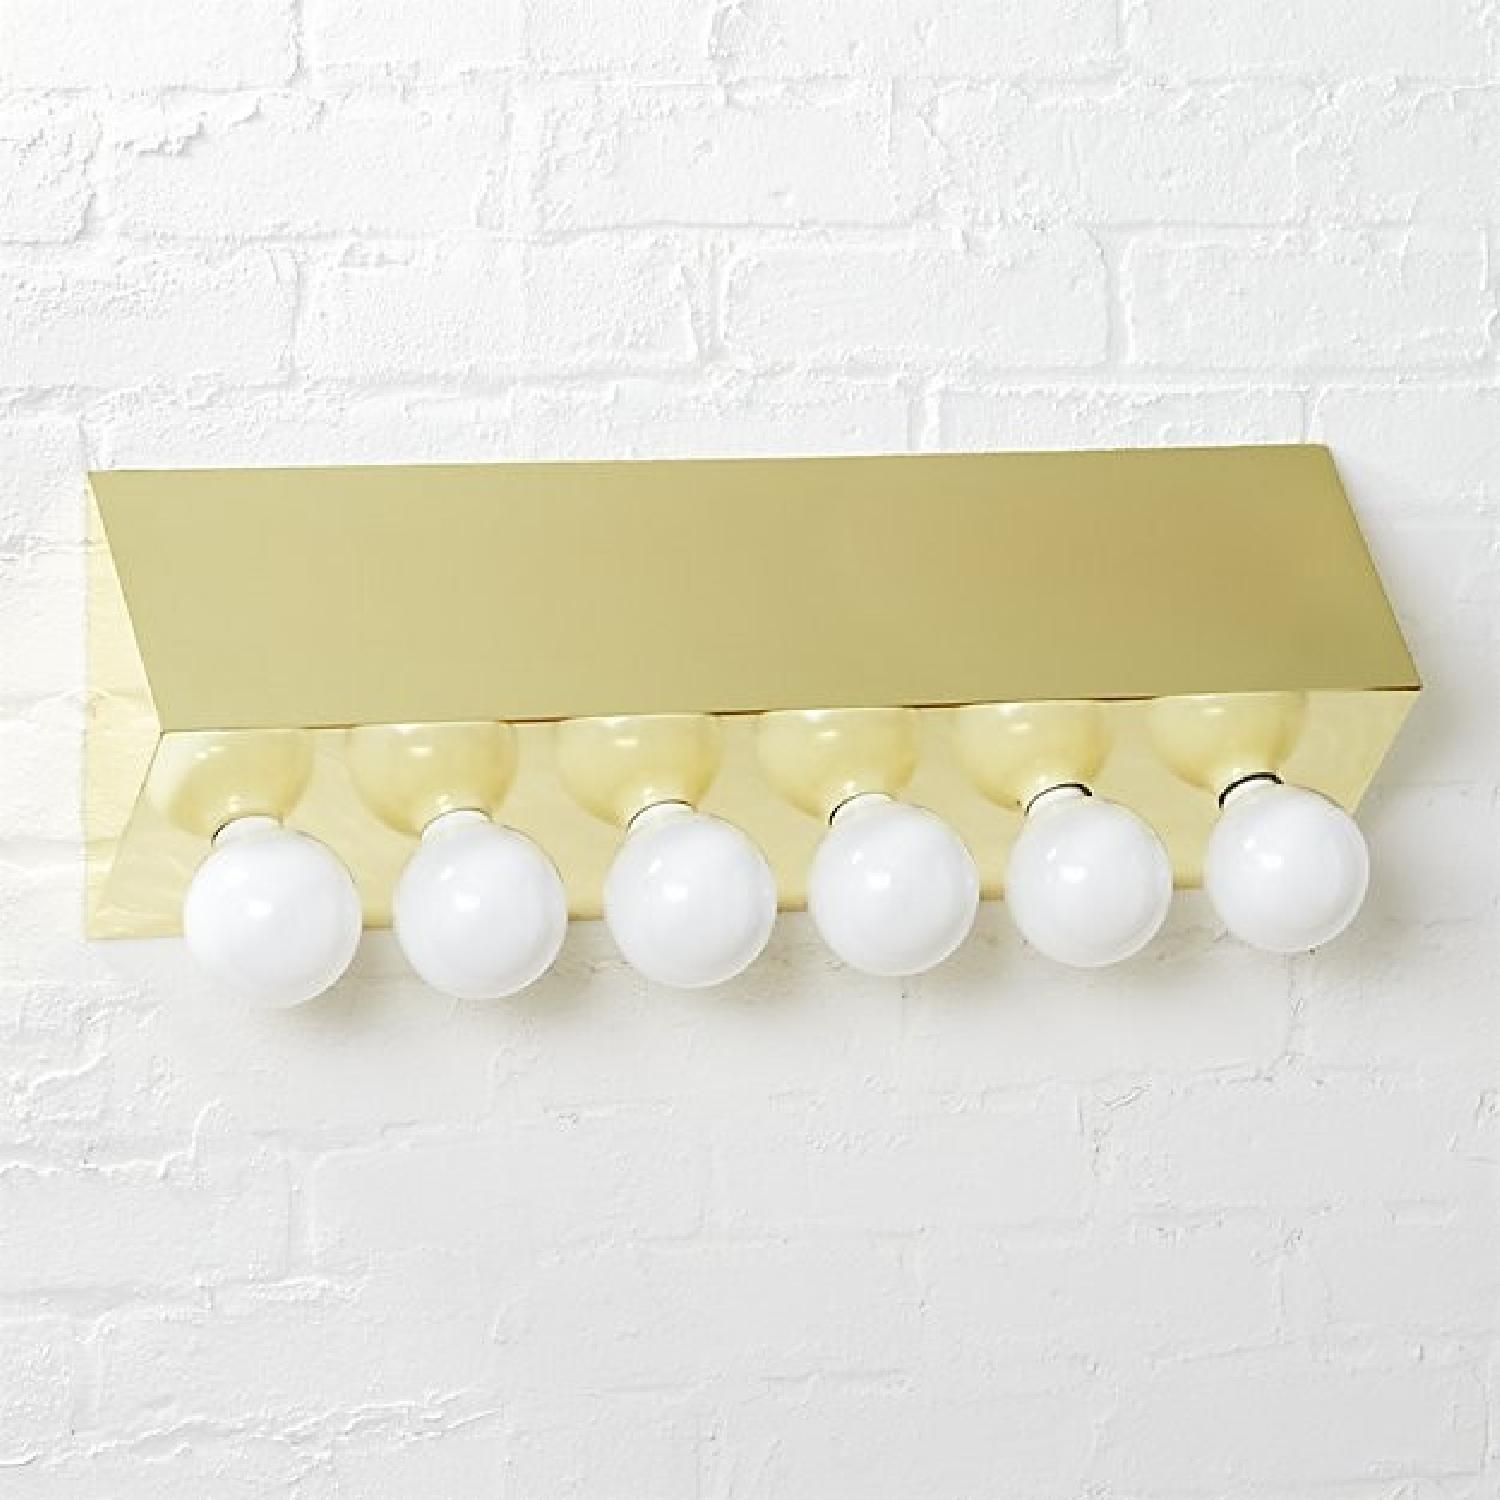 CB2 Hollywood Glam Brass Wall Sconce - AptDeco